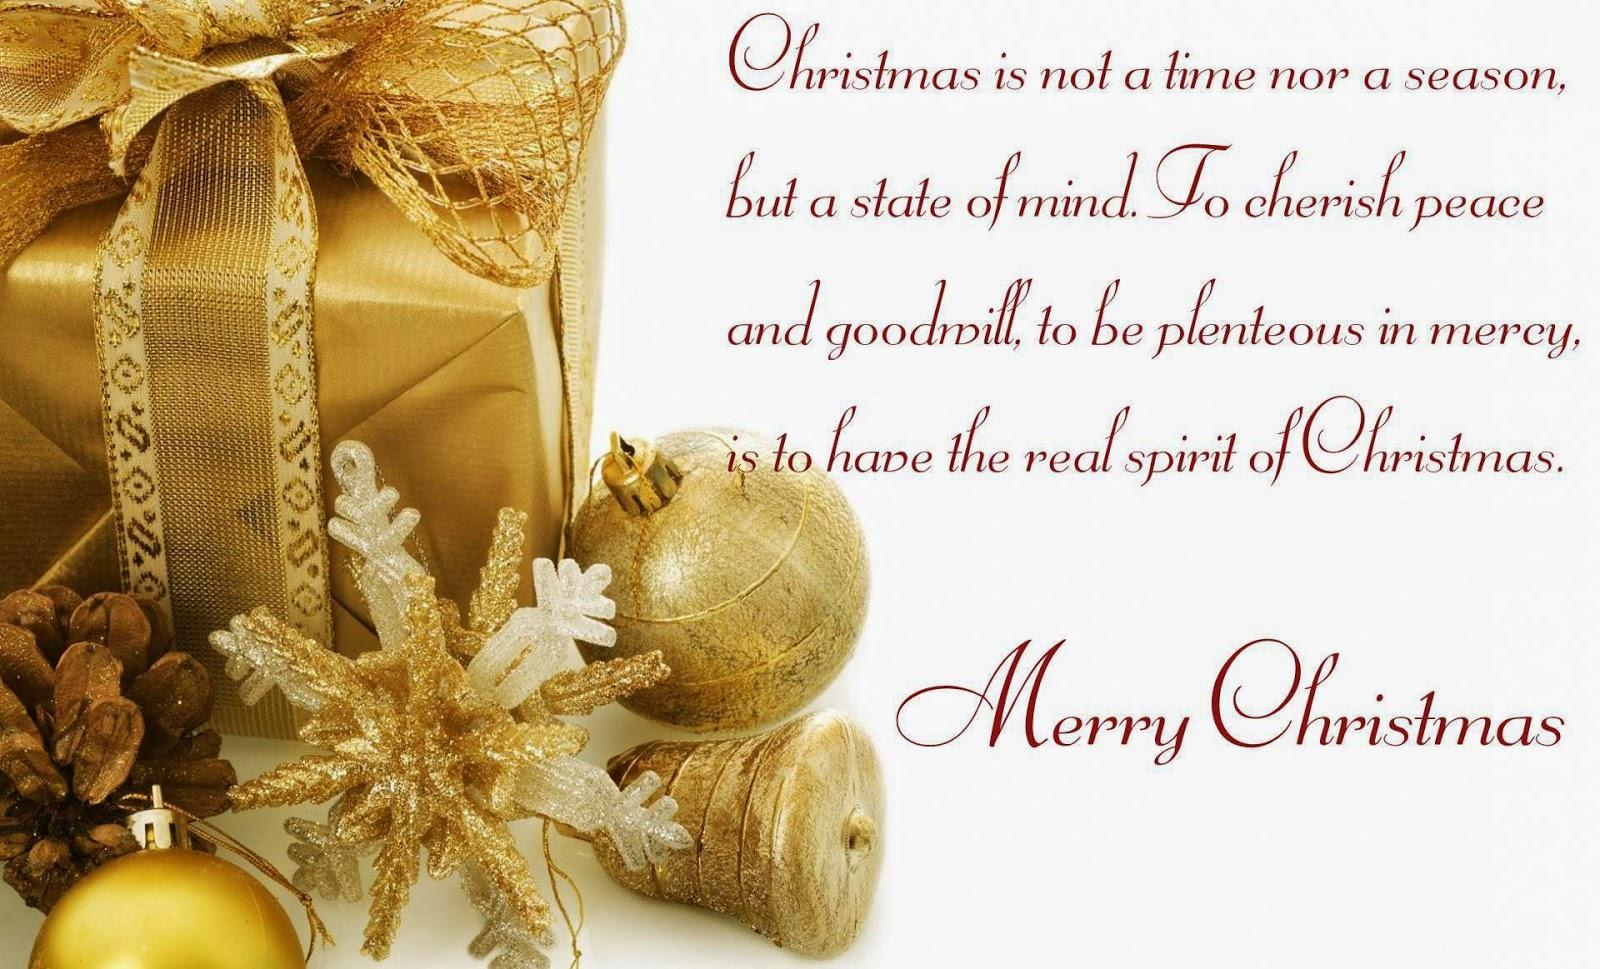 Merry Christmas Greetings Message Greetings1